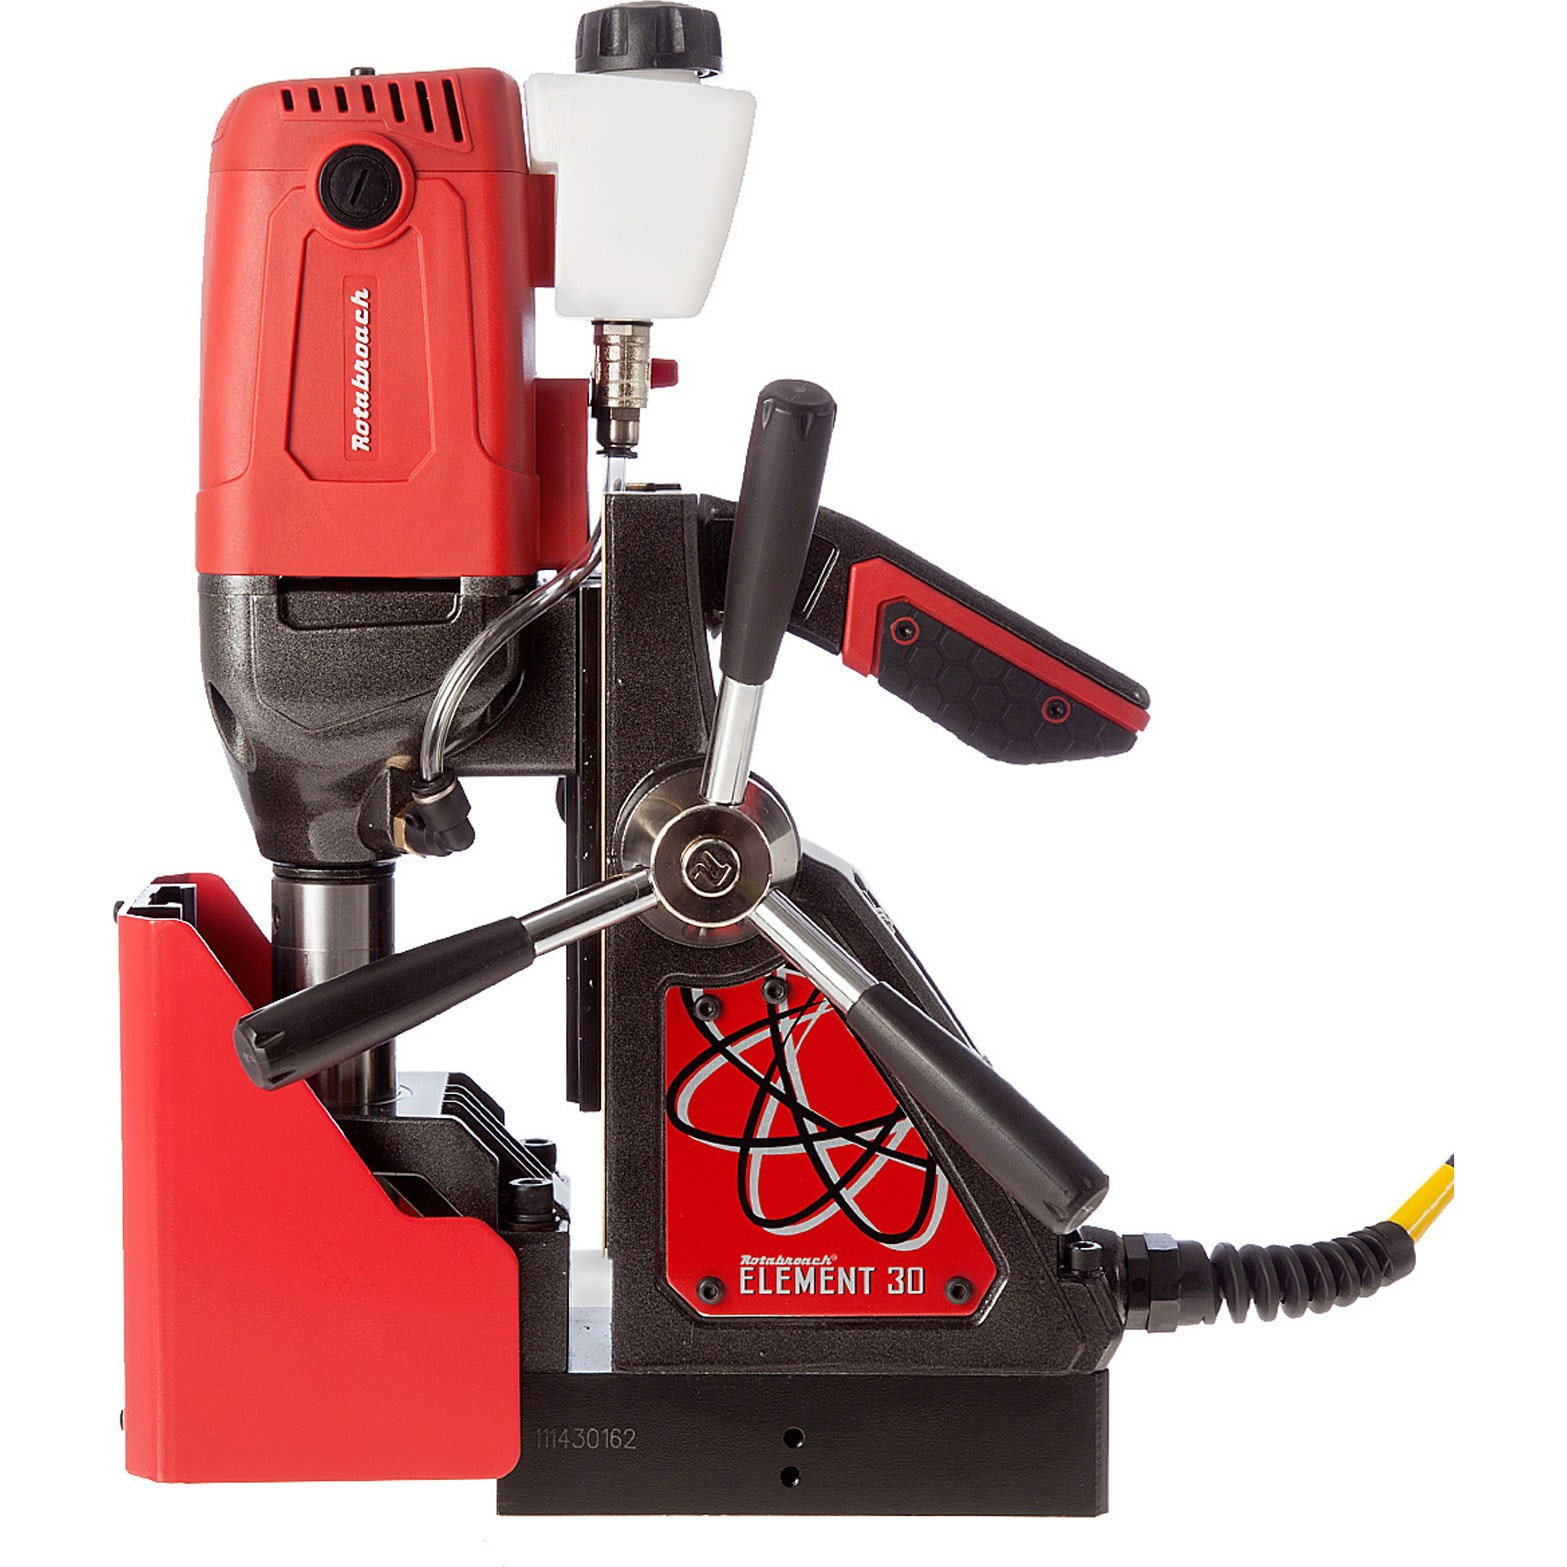 ROTABROACH ELEMENT 30 - The 'Element 30' is a combination of power and portability.This machine is one of the lightest magnetic based drills in the world.Suitable for drilling up to 32mm diameter by 35mm depth.£360.00 + VAT